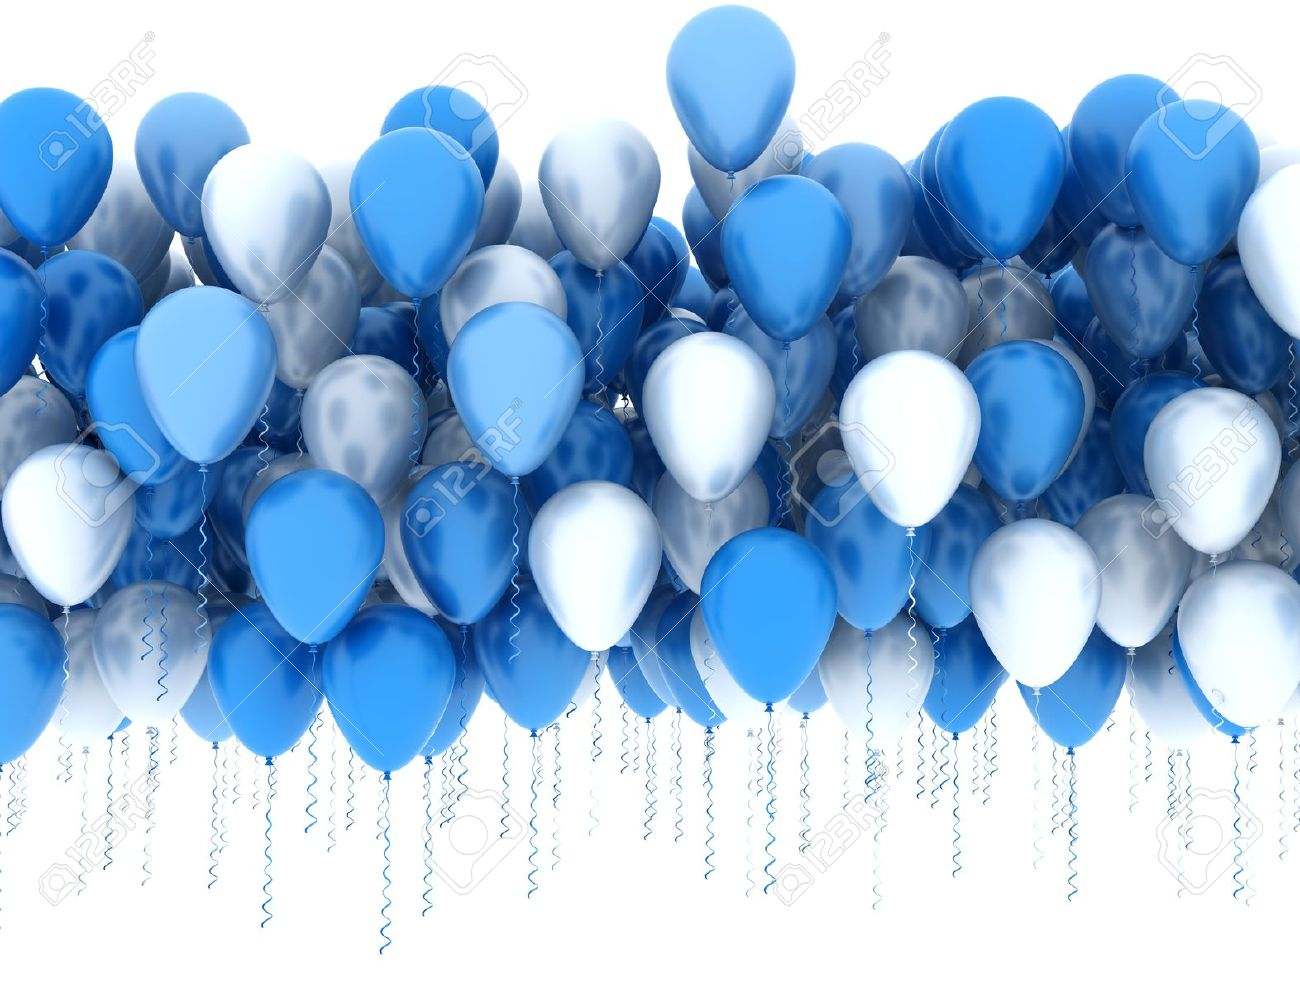 blue and white balloons stock photo picture and royalty free image